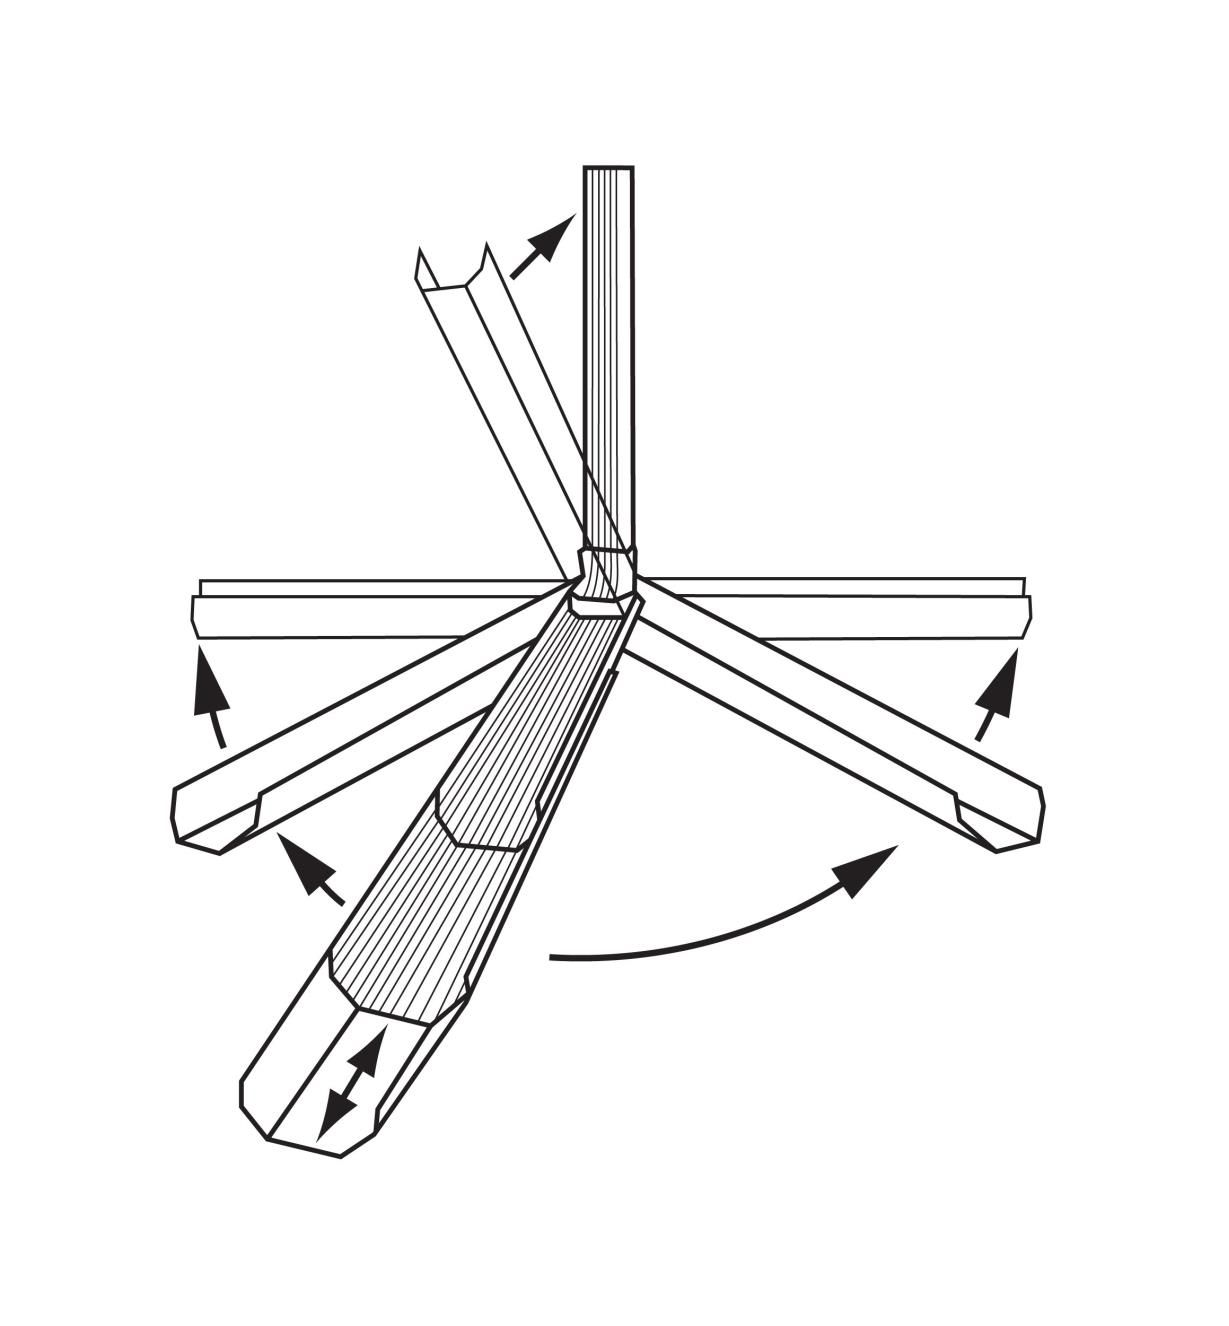 Illustration of Adjustable Downspout's various possible positions: up, down, telescoped, and swiveled 180 degrees